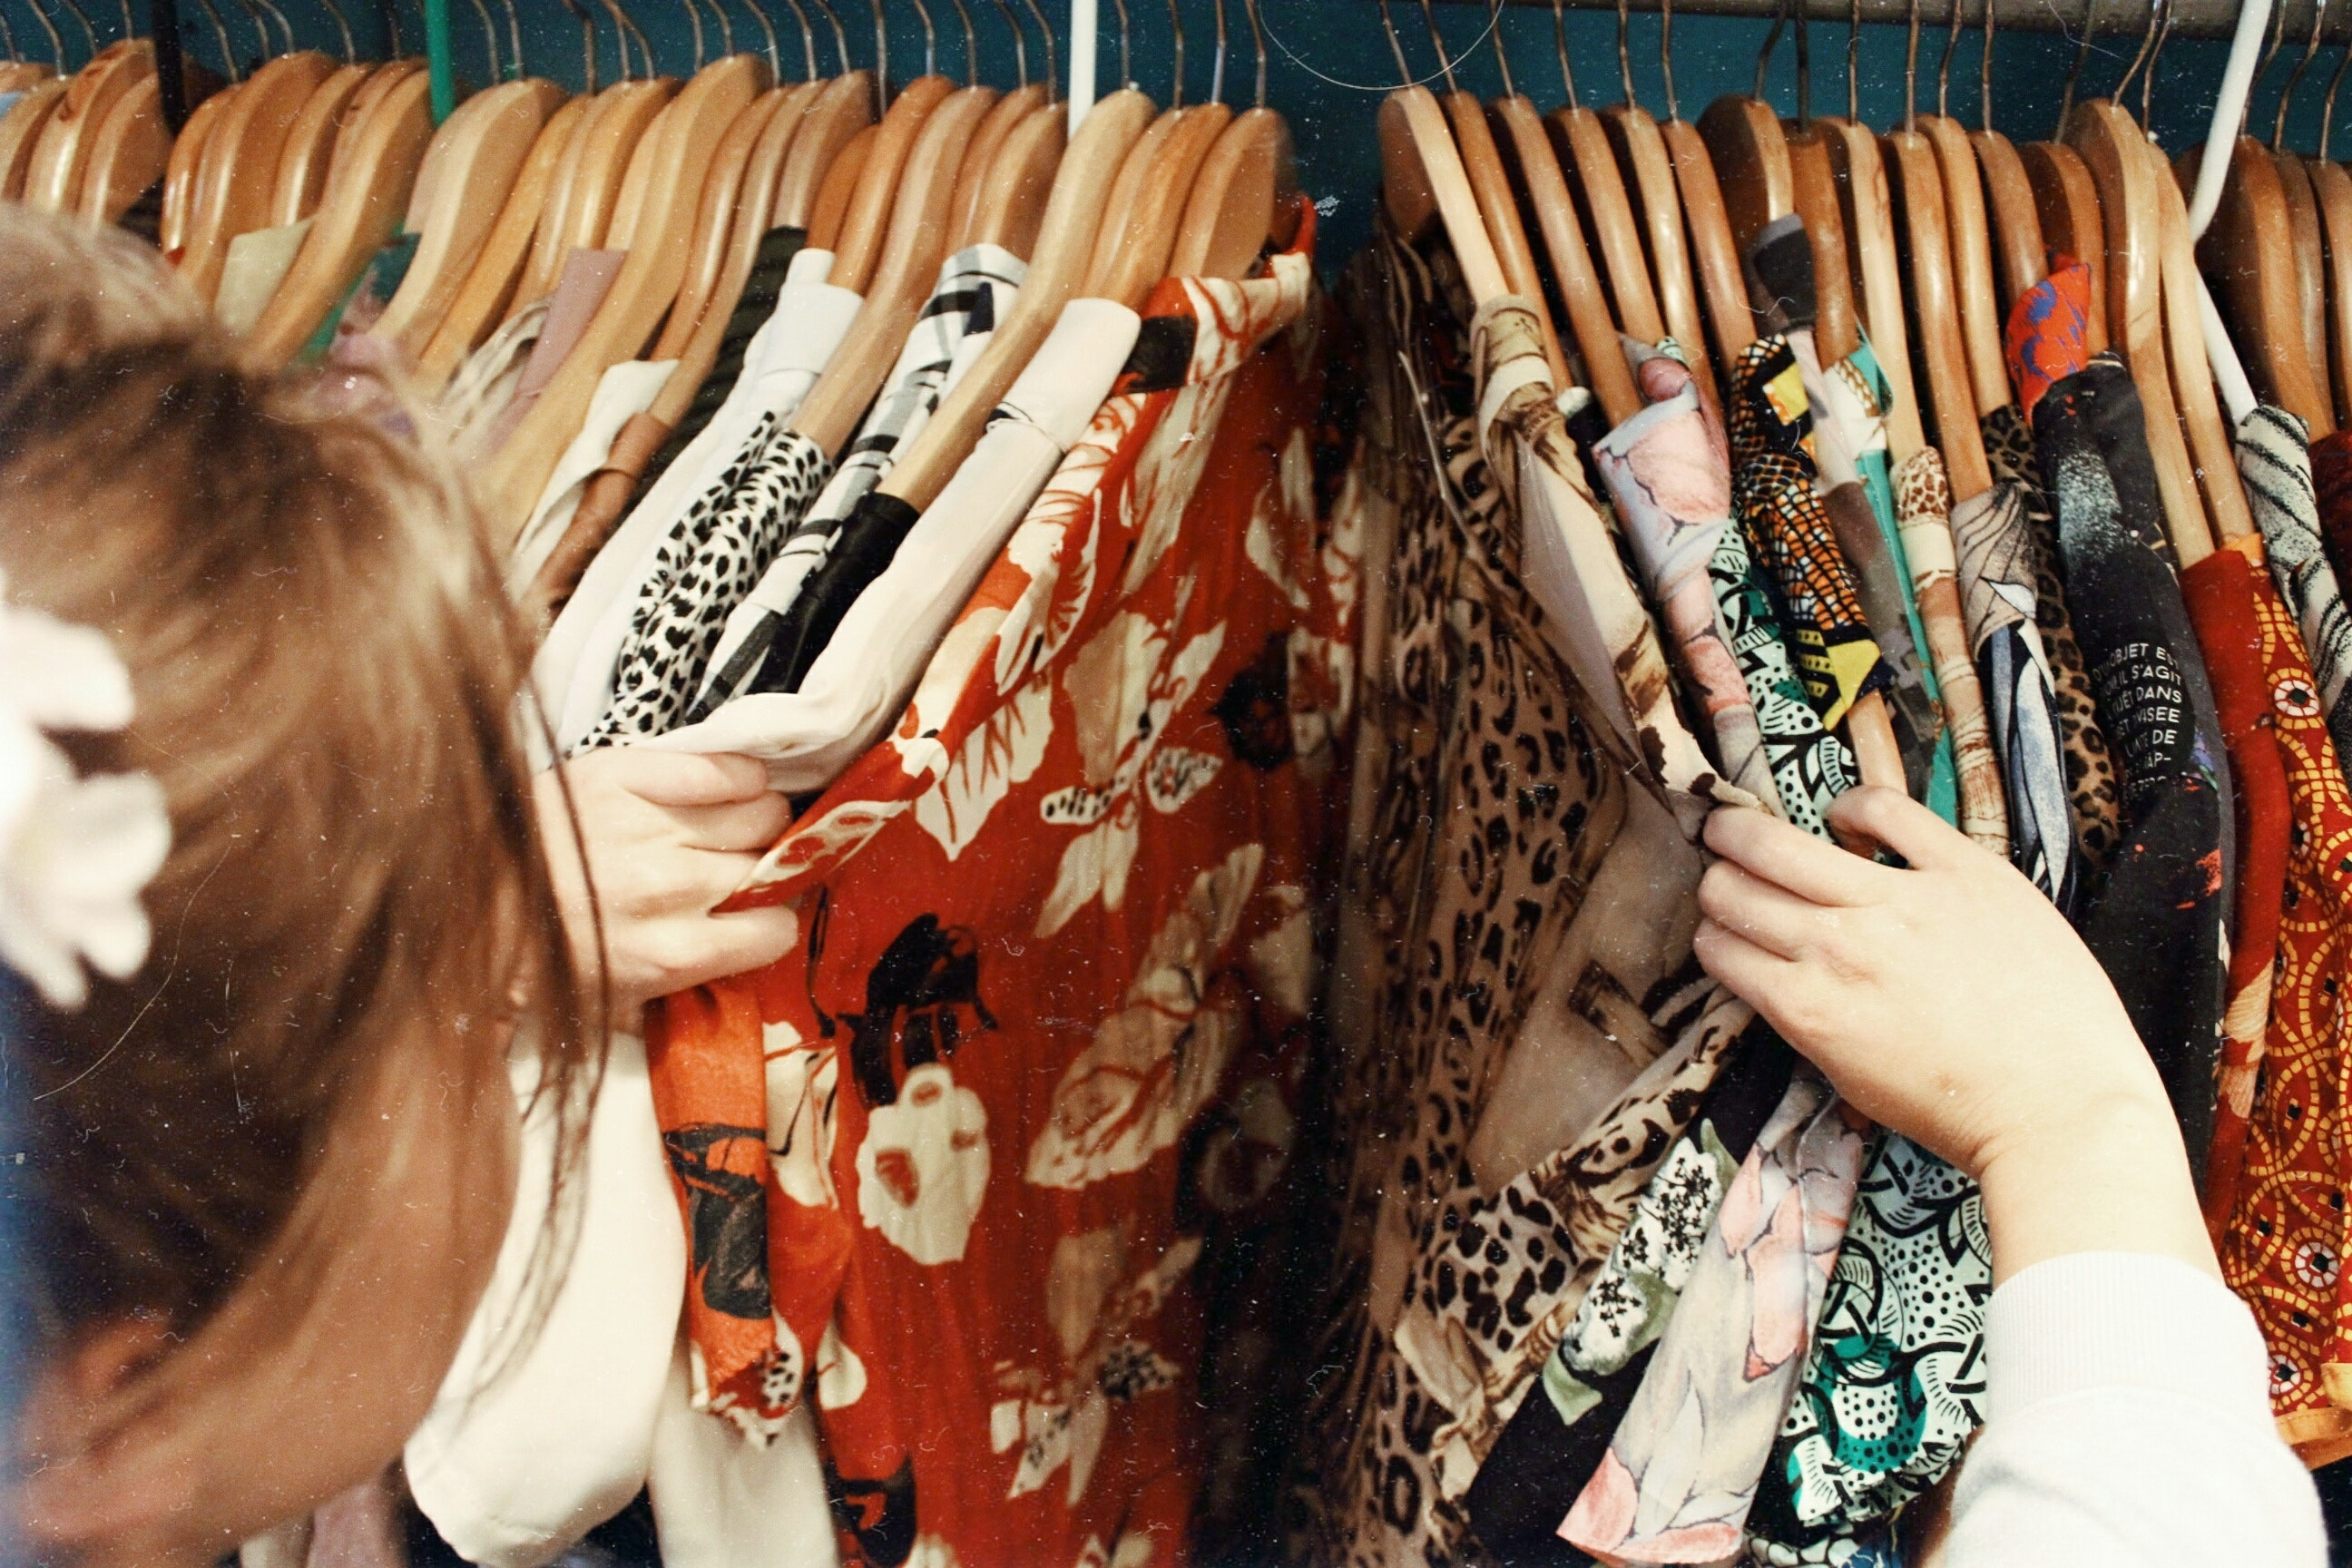 Value-conscious shoppers are more likely to buy fakes